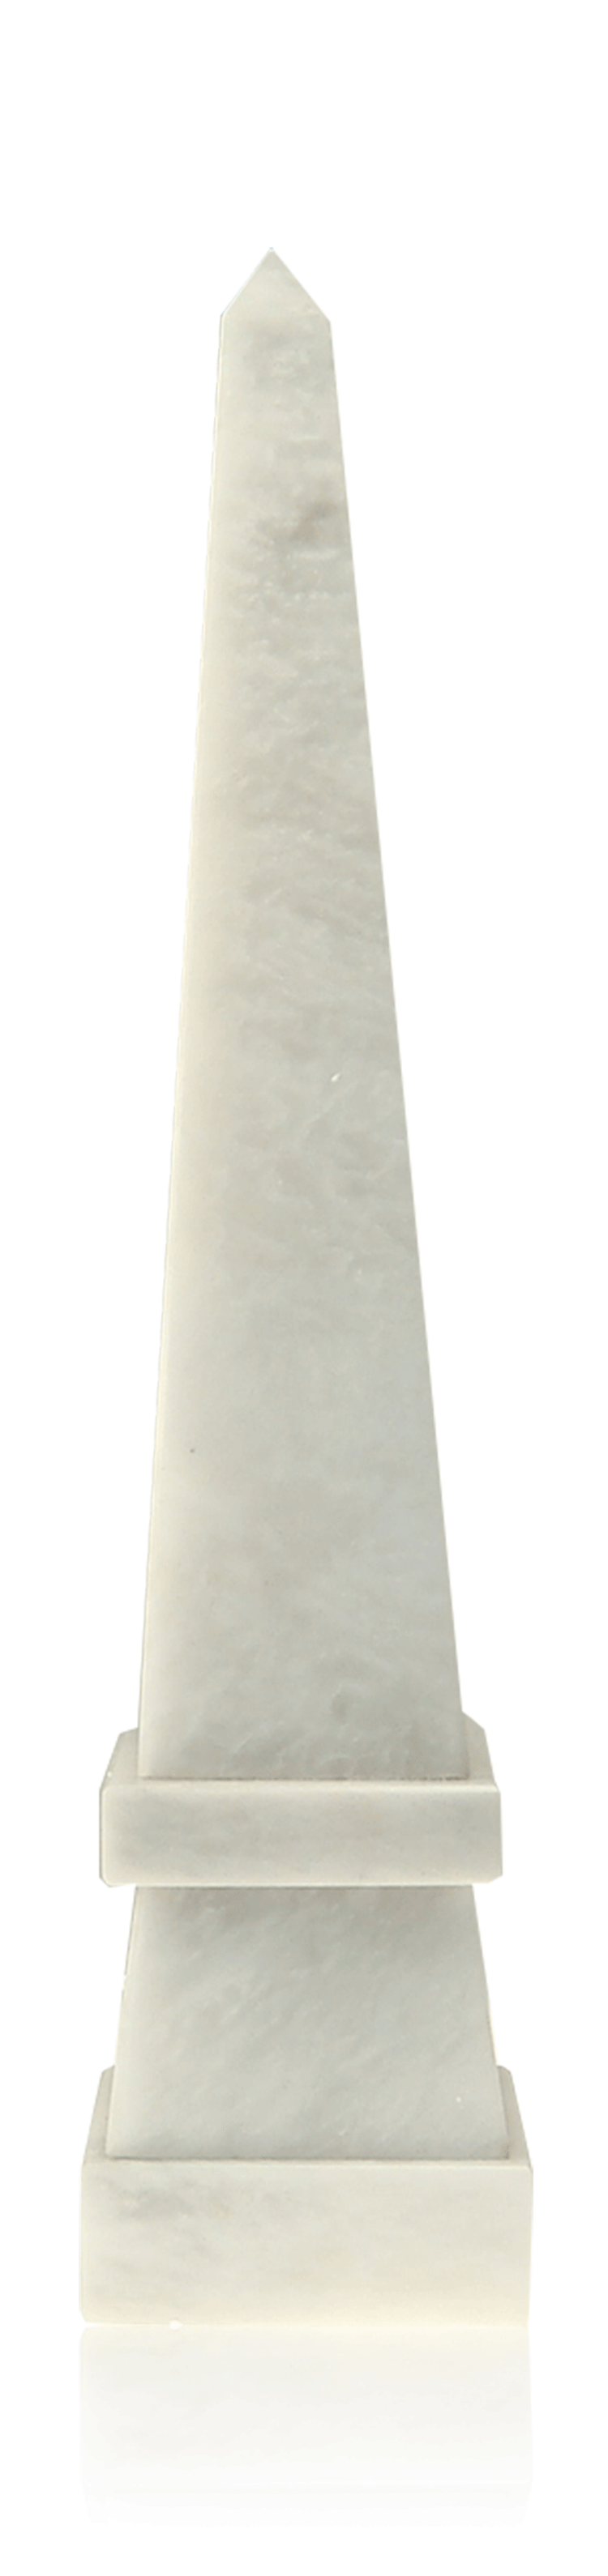 Stepped Obelisk White Marble